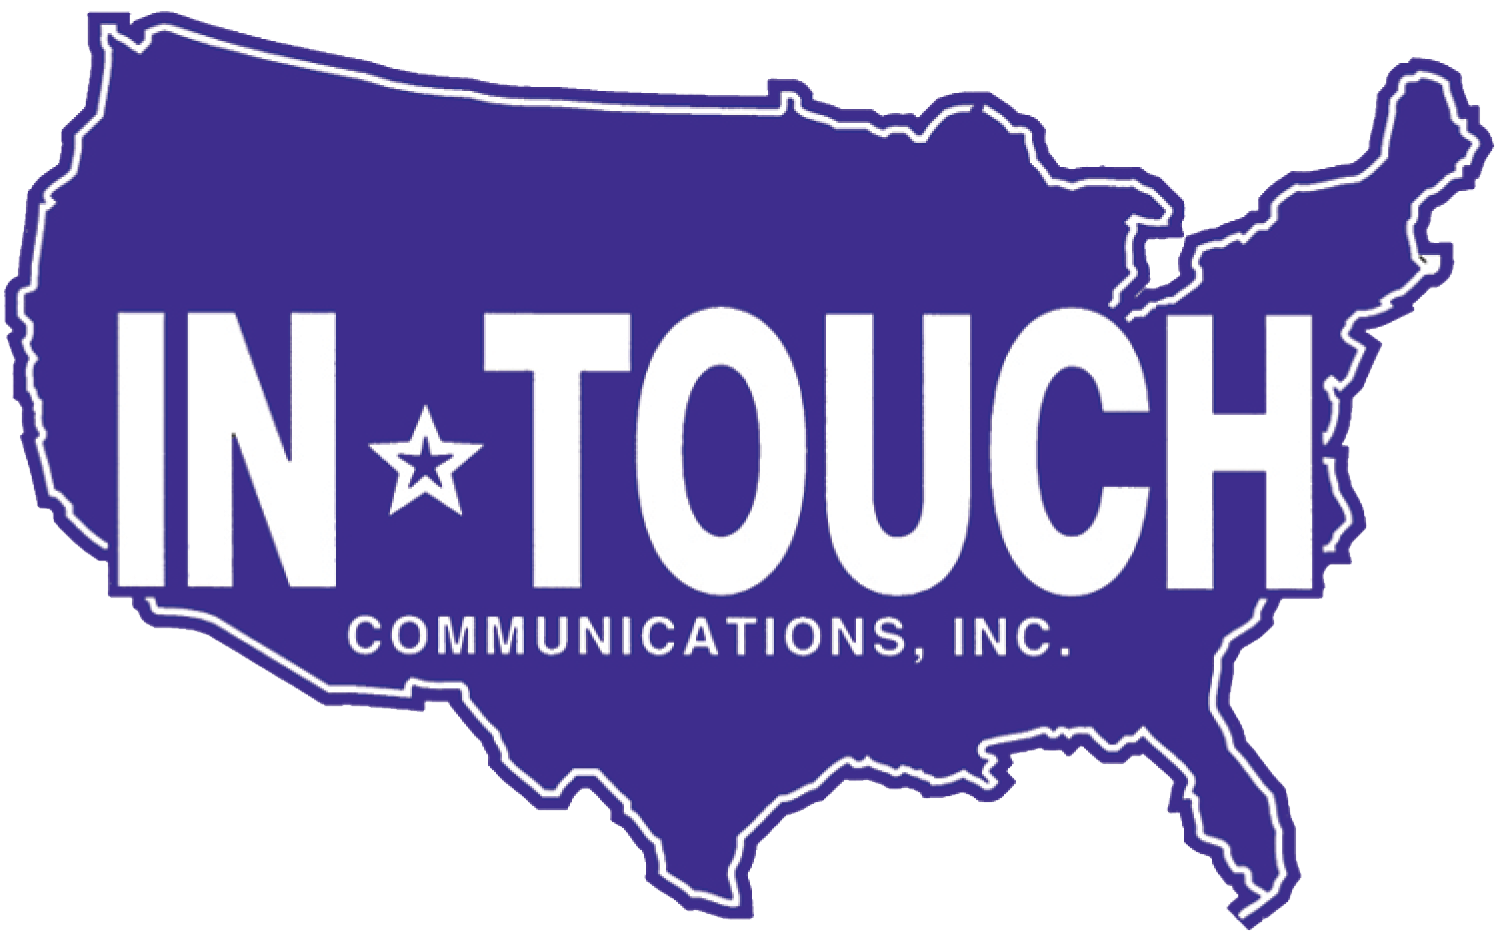 In*Touch Communications, Inc. logo